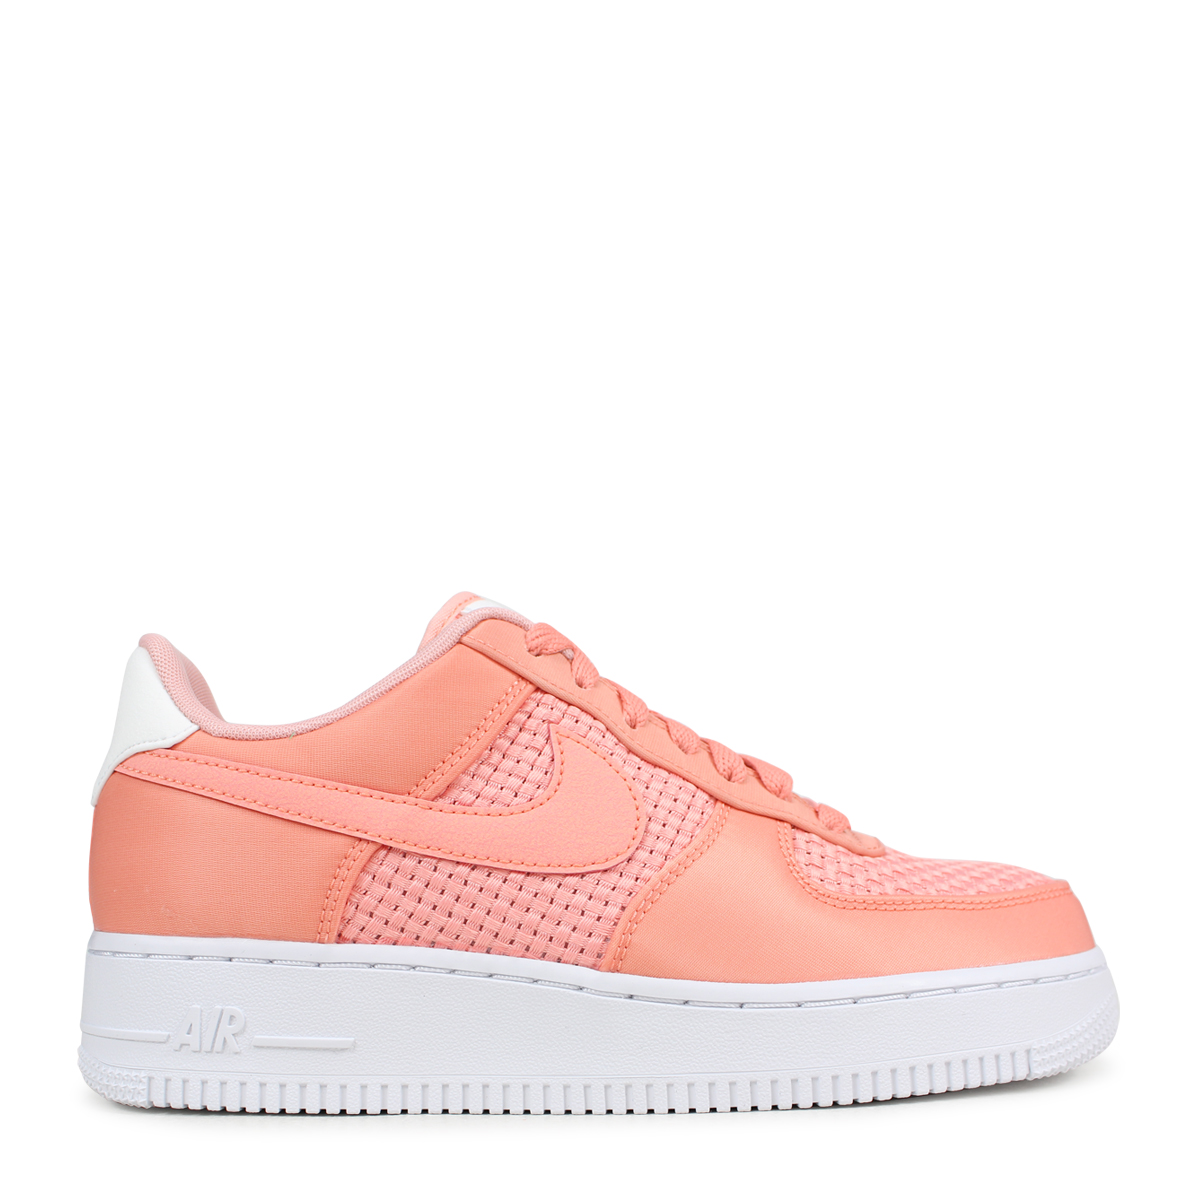 new arrival ed2b3 ab64d NIKE WMNS AIR FORCE 1 SE Nike air force 1 07 lady s sneakers AA0287-601  pink  load planned Shinnyu load in reservation product 5 9 containing   185